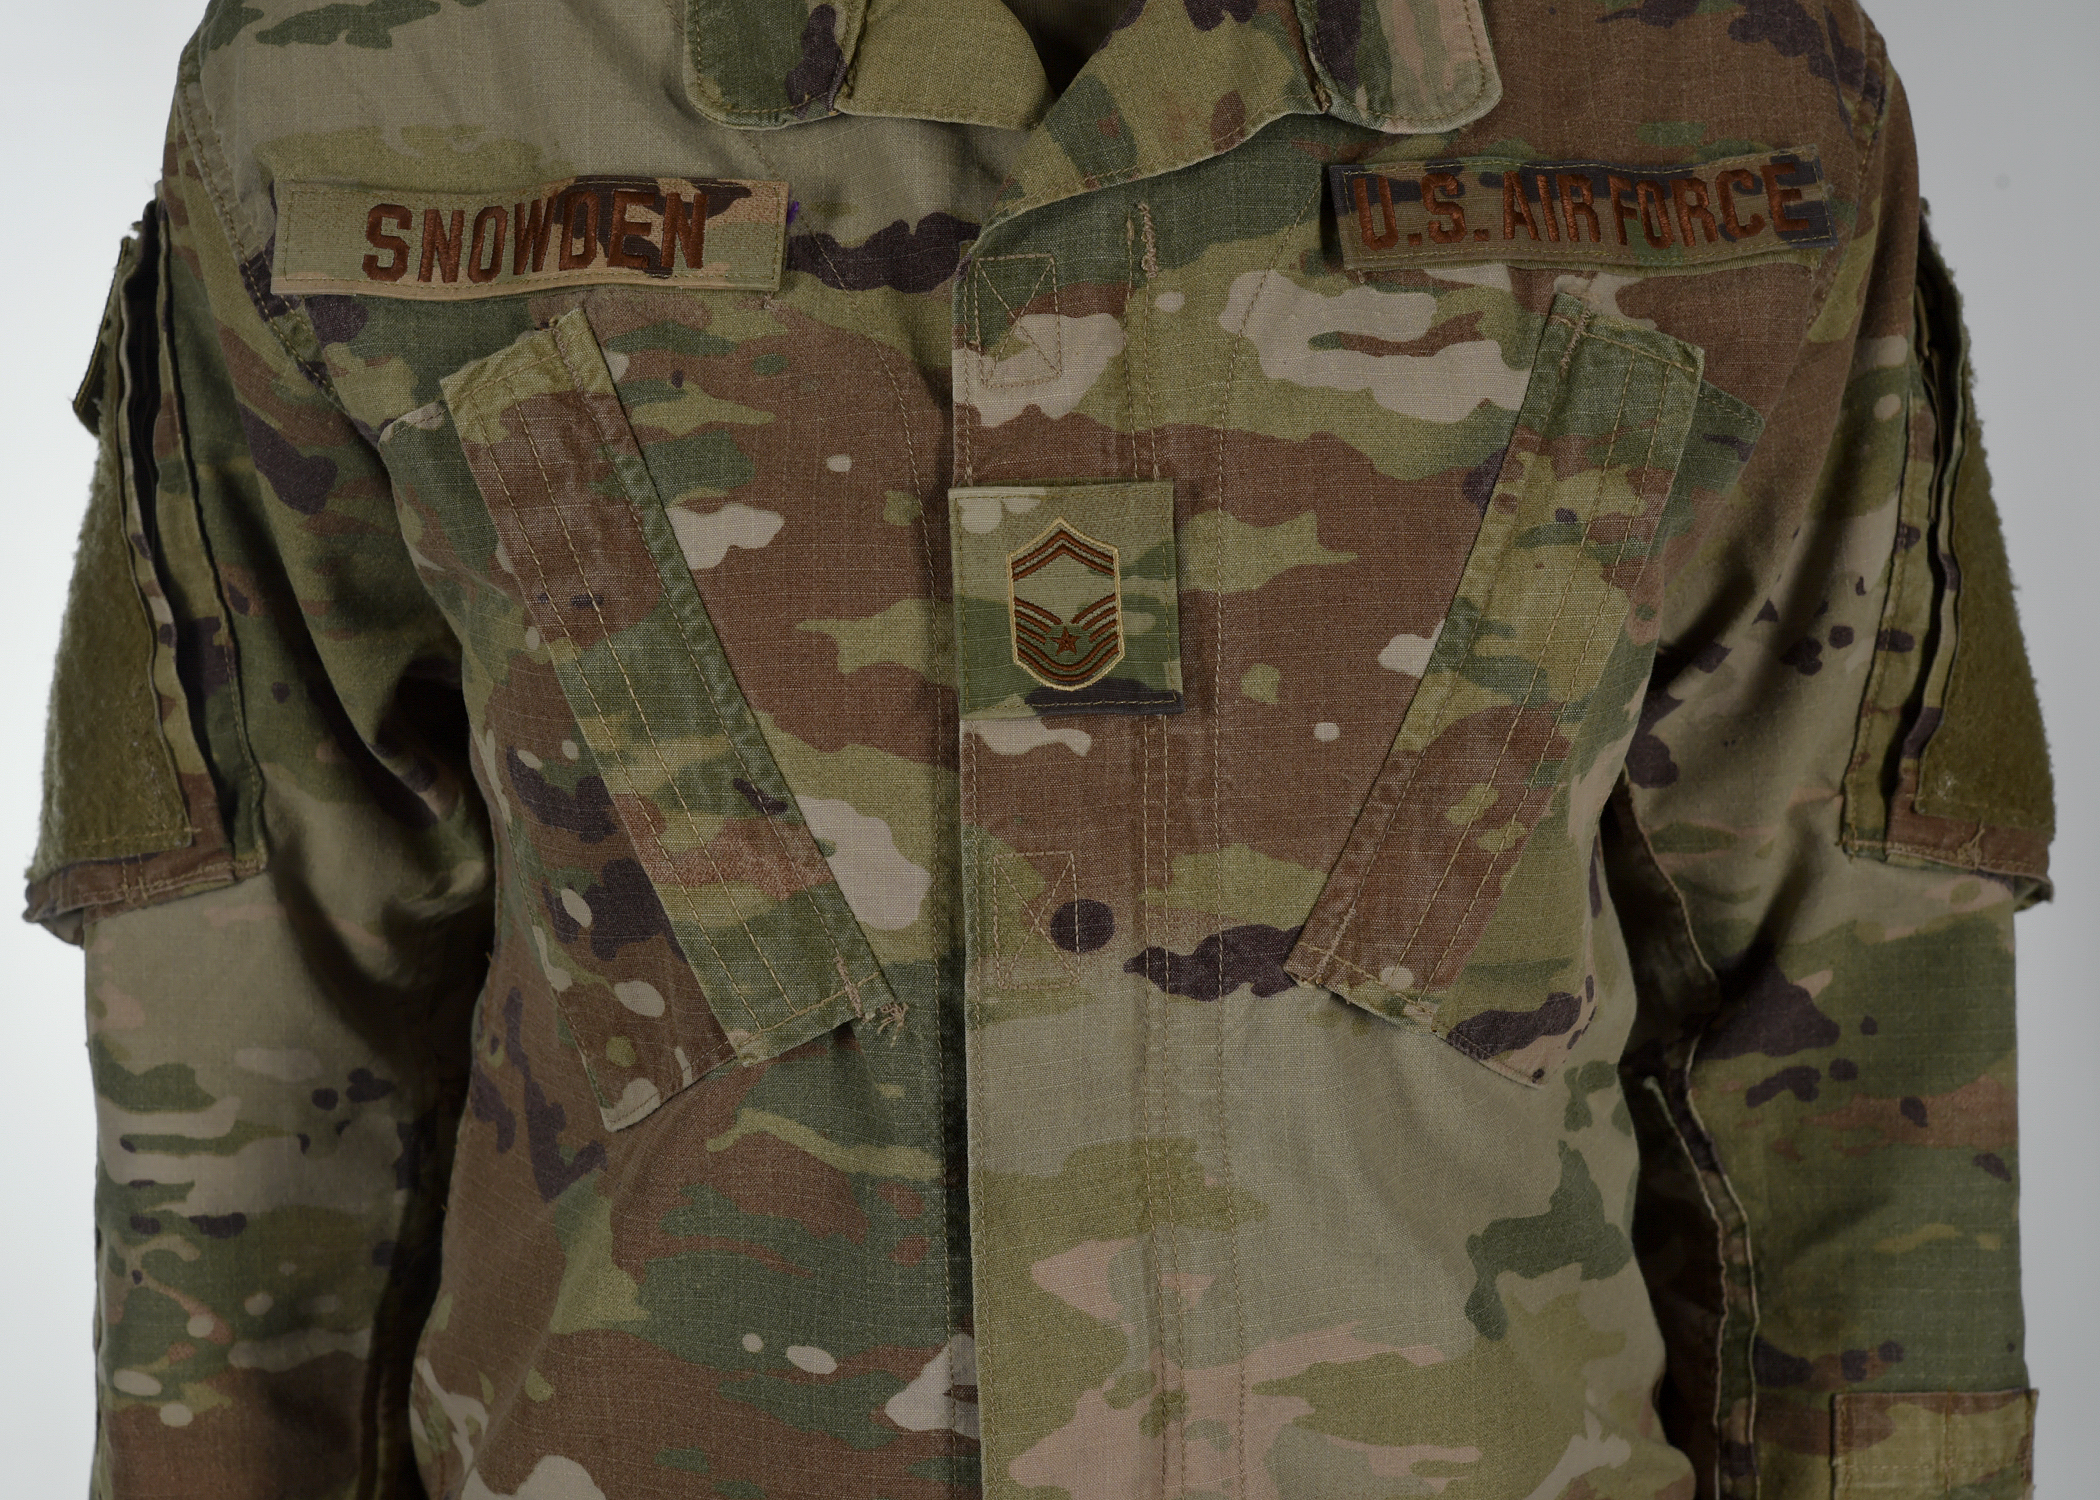 Airmen will wear their rank in the middle of their chest ― instead of on their sleeves or collars ― and the uniform will have velcro pockets on the chest. (Air Force)